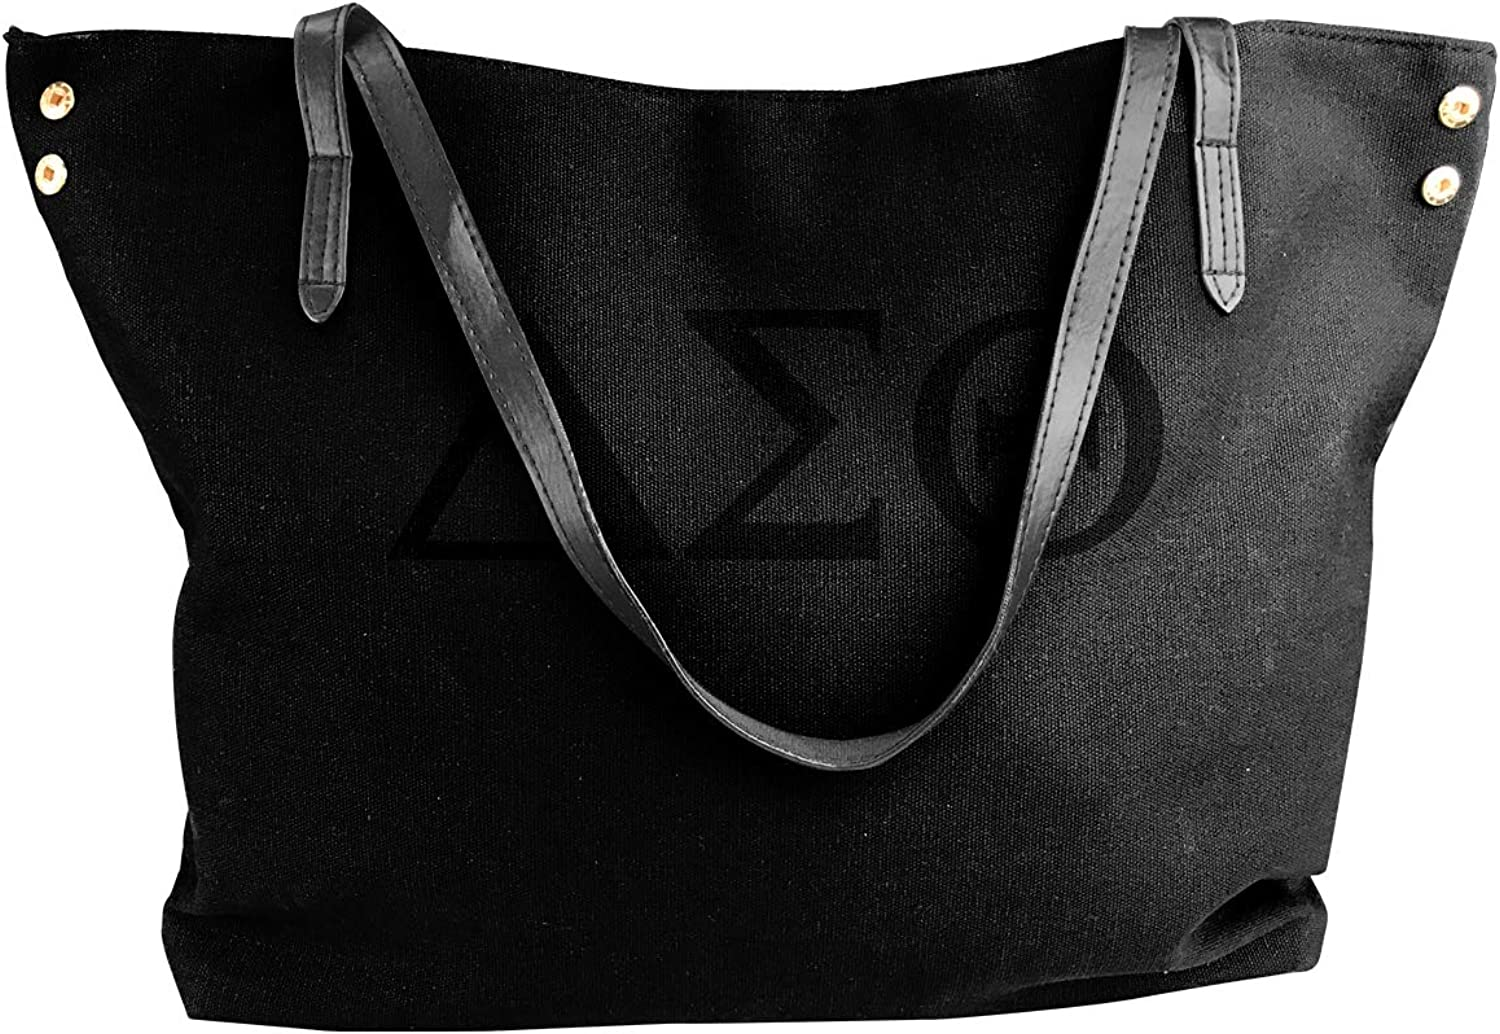 DeltaSigmaTheta Women Tote Bags Canvas Shoulder Handbags Satchel Purse Bag